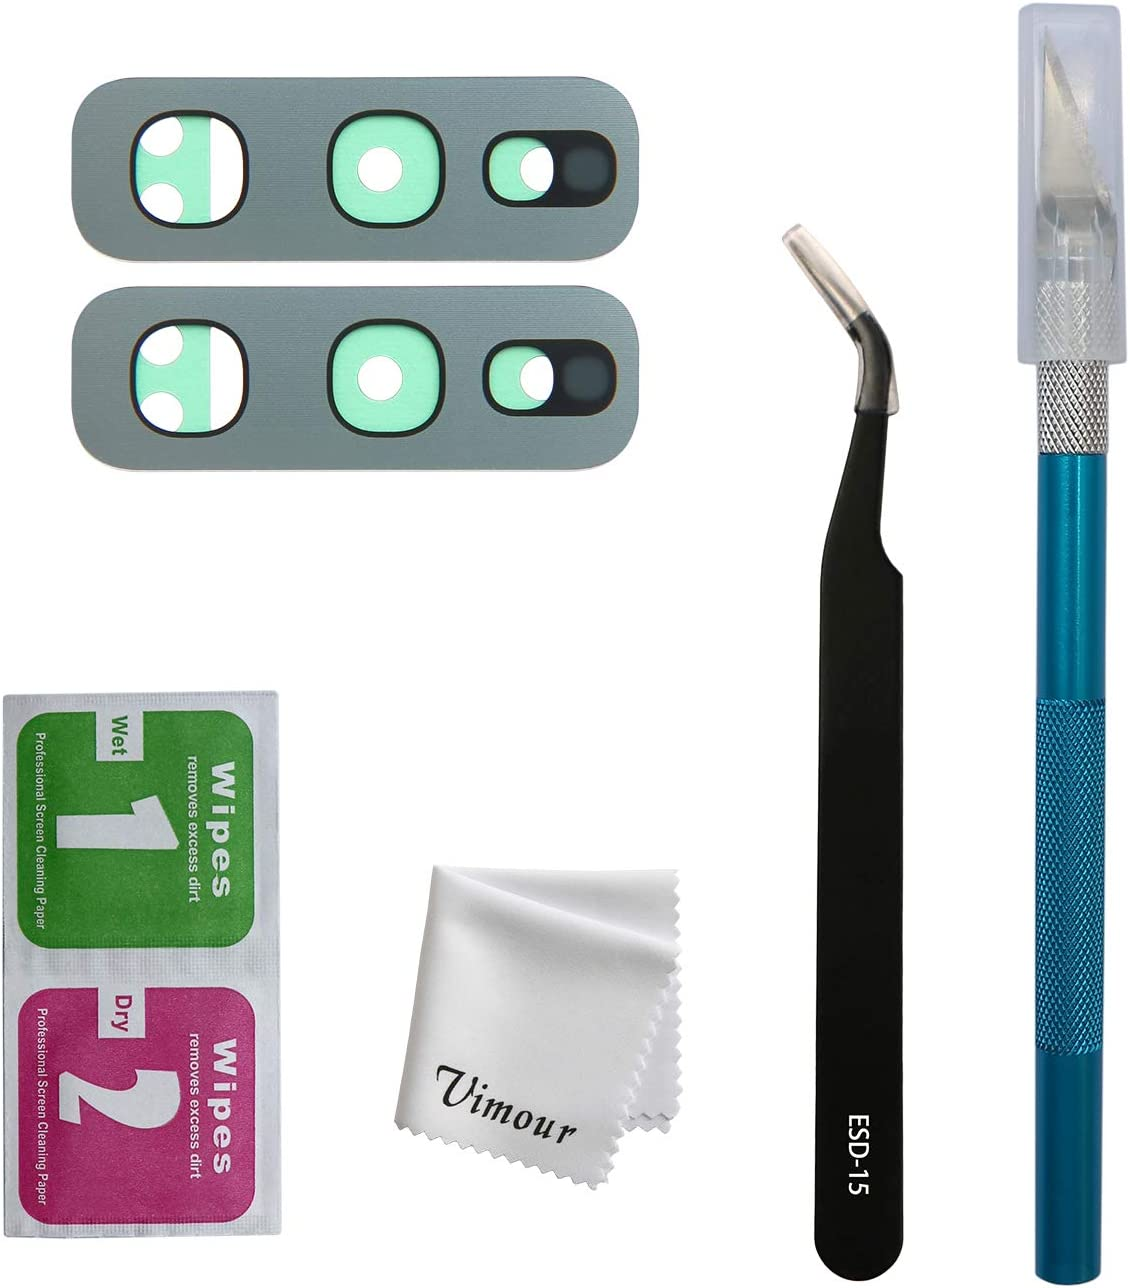 Vimour 2 Pieces OEM Rear Camera Glass Lens Replacement for Samsung Galaxy S10e G970U (All Carriers) with Pre-Installed Adhesive and Repair Toolkit (White)